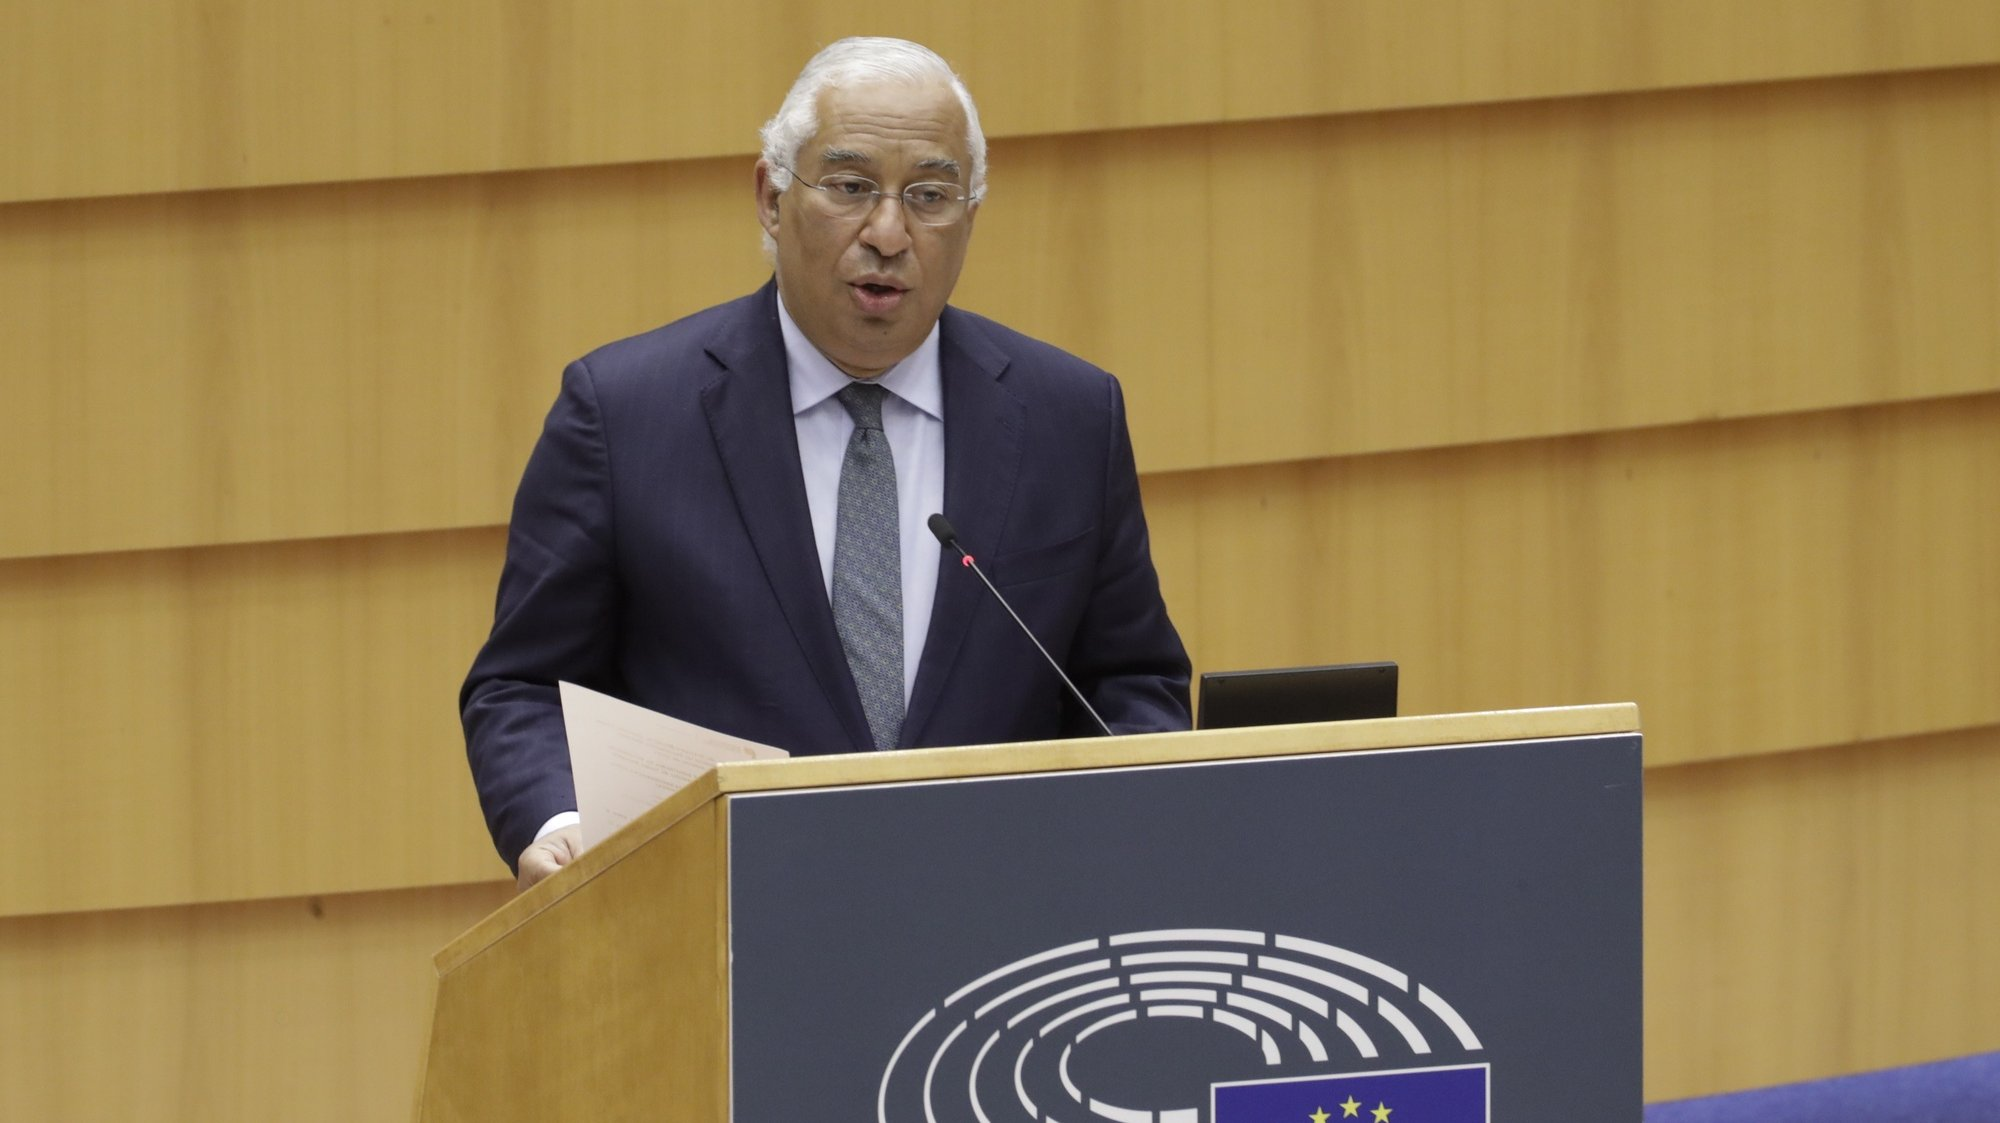 epa08950929 Portuguese Prime Minister Antonio Costa speaks during debate to present the programme of activities of the Portuguese presidency of the EU at plenary session of the European Parliament, in Brussels, Belgium, 20 January 2021.  EPA/OLIVIER HOSLET